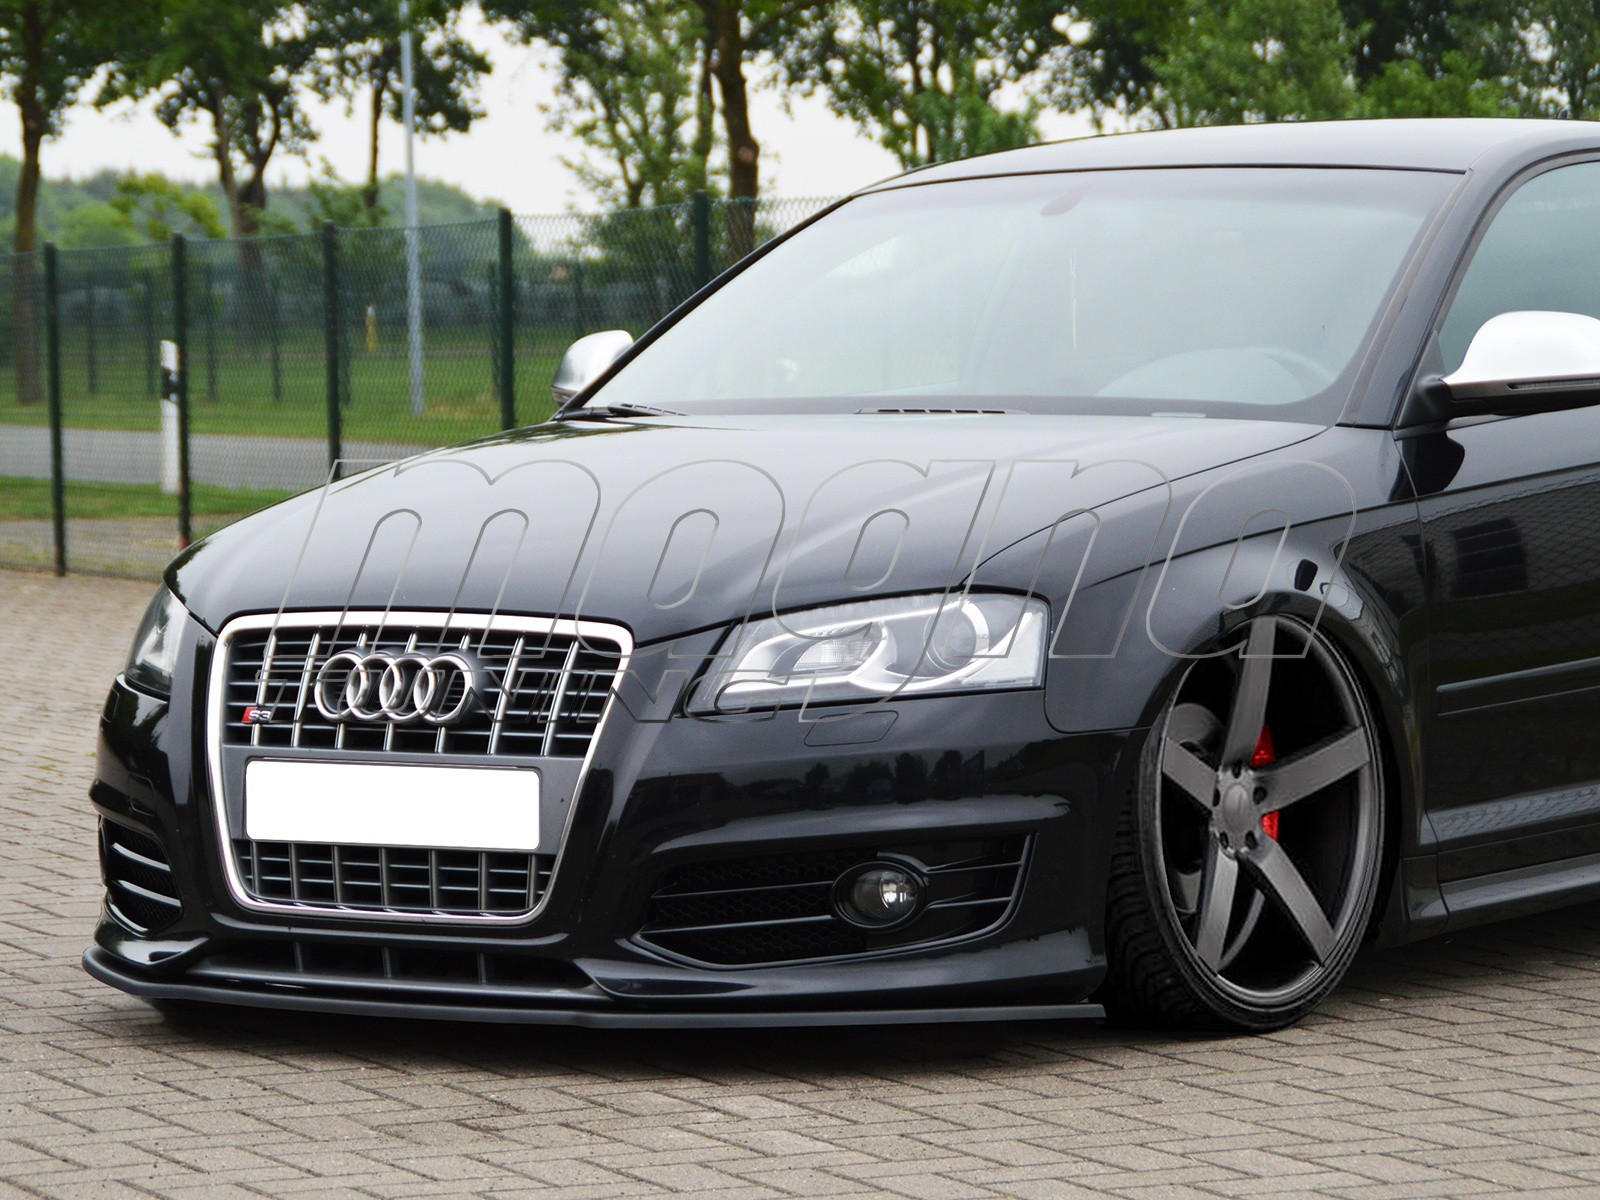 audi s3 8p intenso front bumper extension. Black Bedroom Furniture Sets. Home Design Ideas